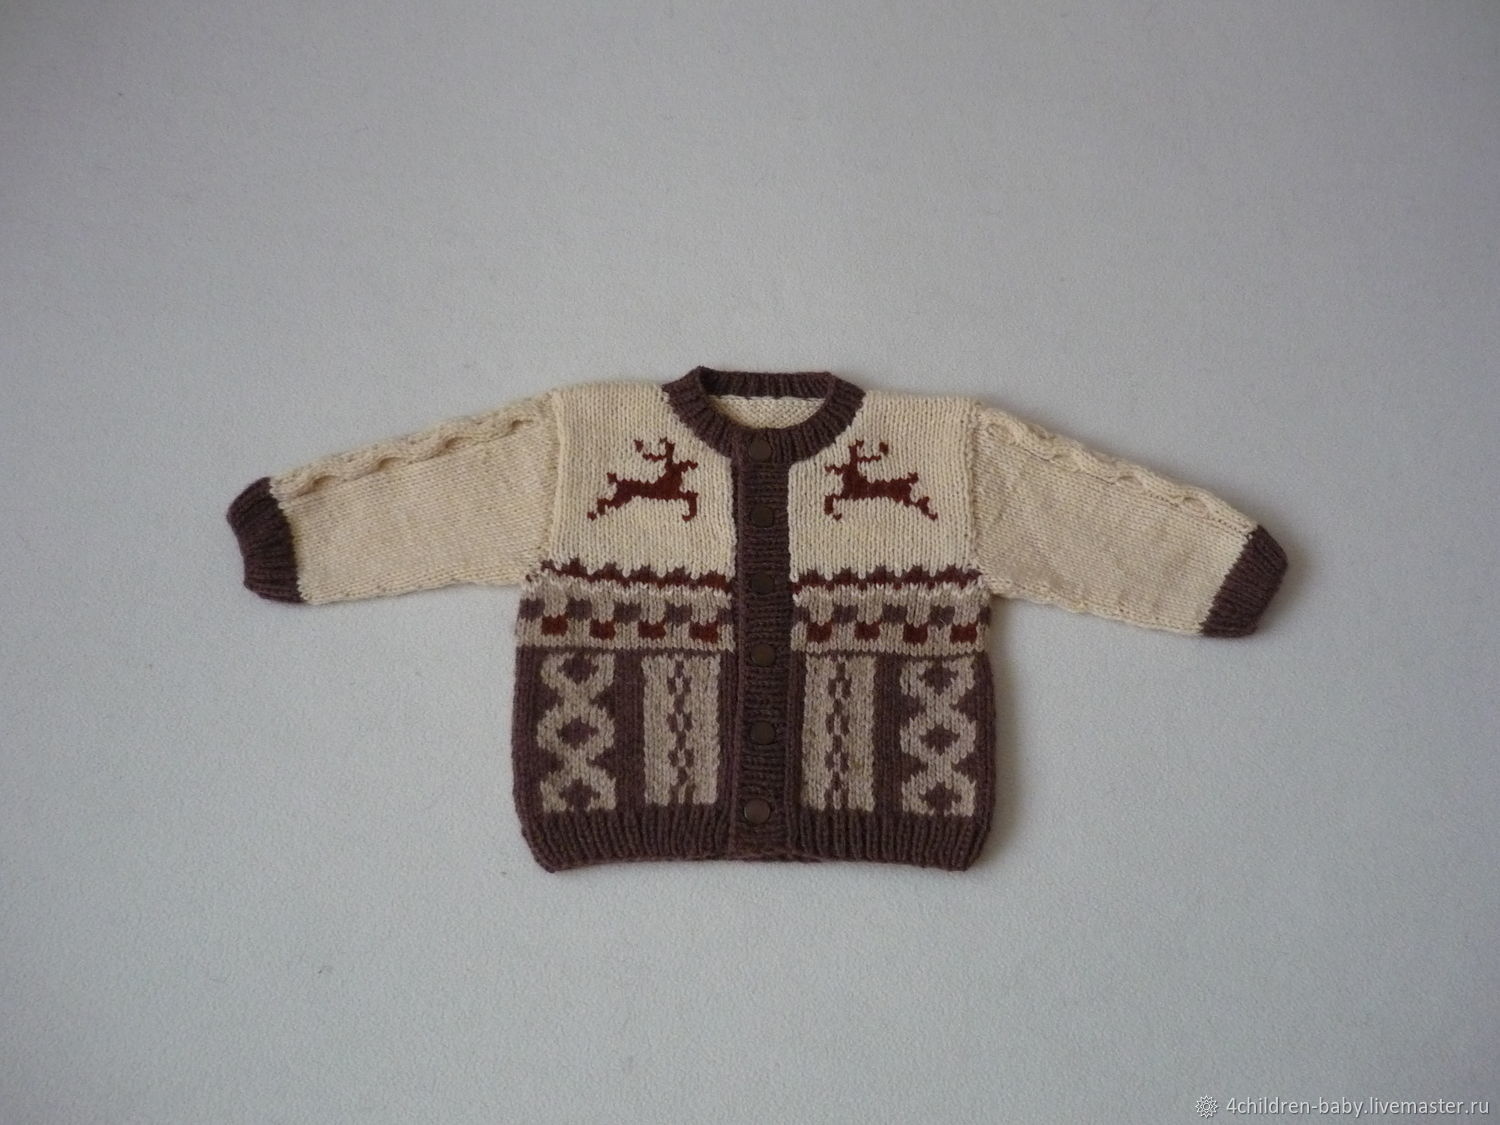 Jacket with deer and scandinavian patterns, Sweatshirts for children, Moscow,  Фото №1